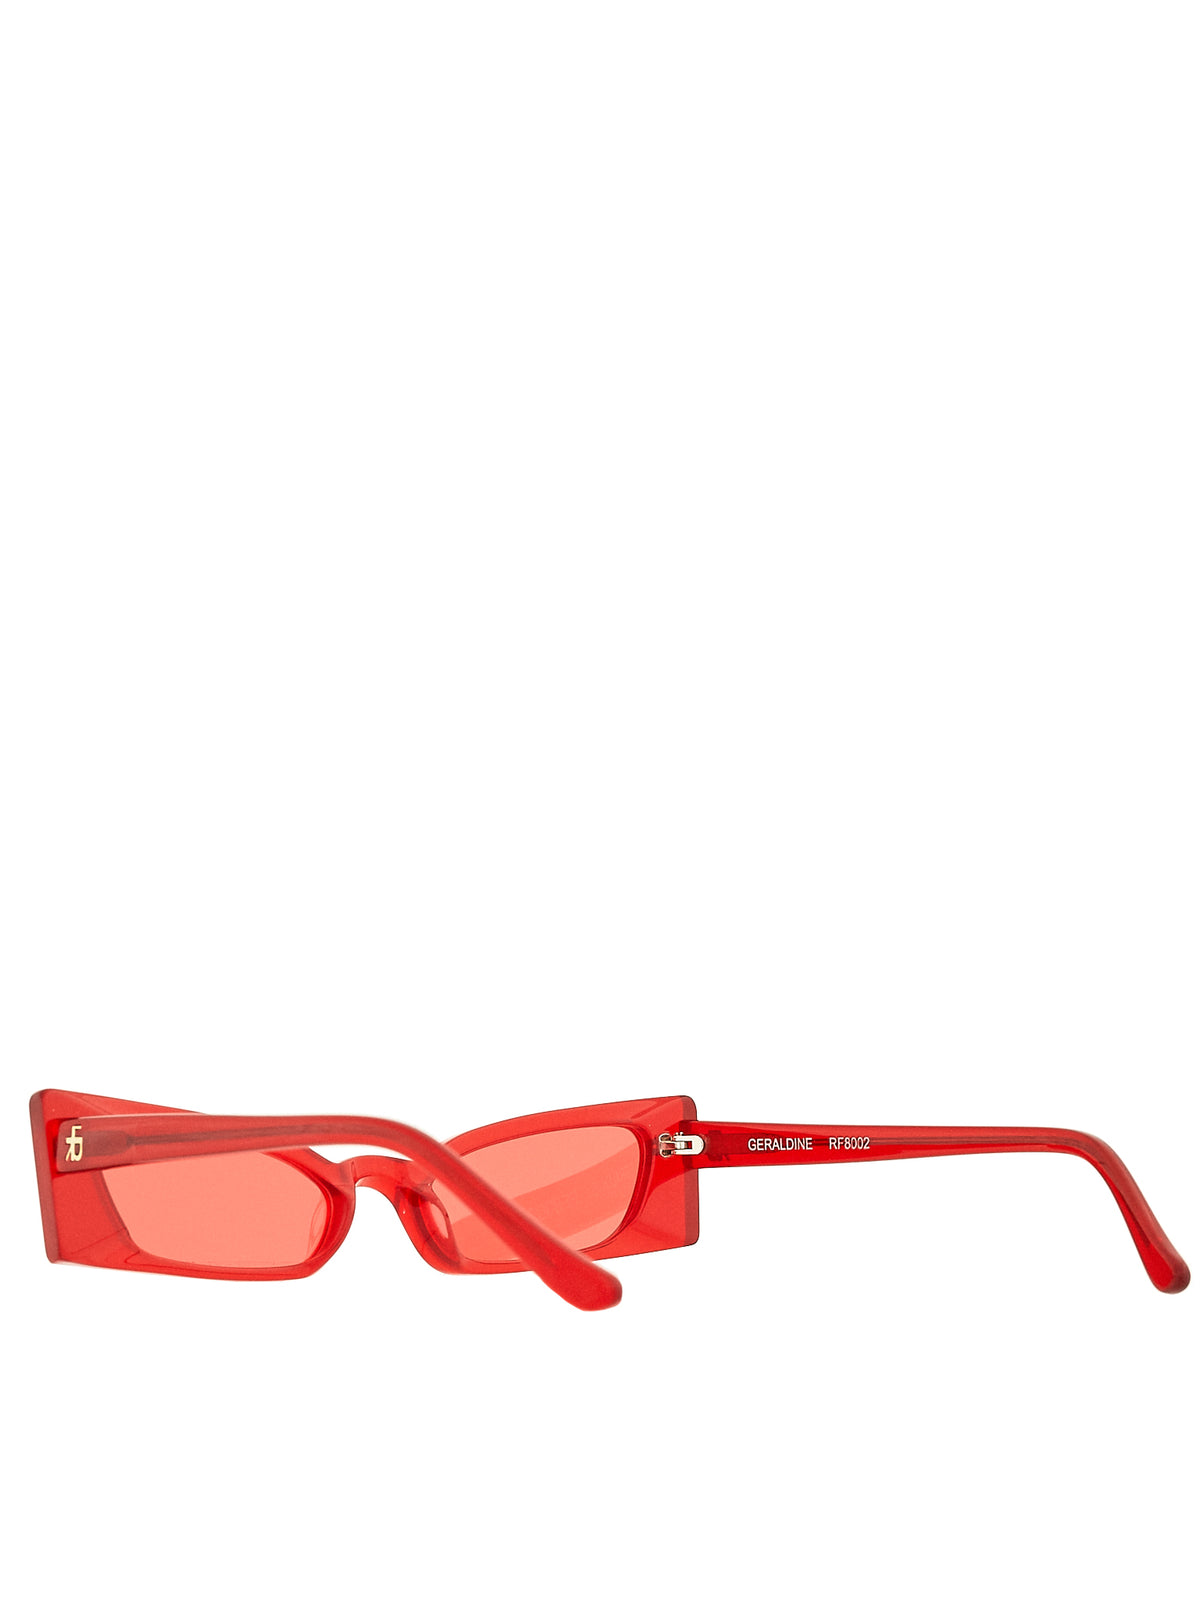 Roberi & Fraud Red Sunglasses - Hlorenzo Detail